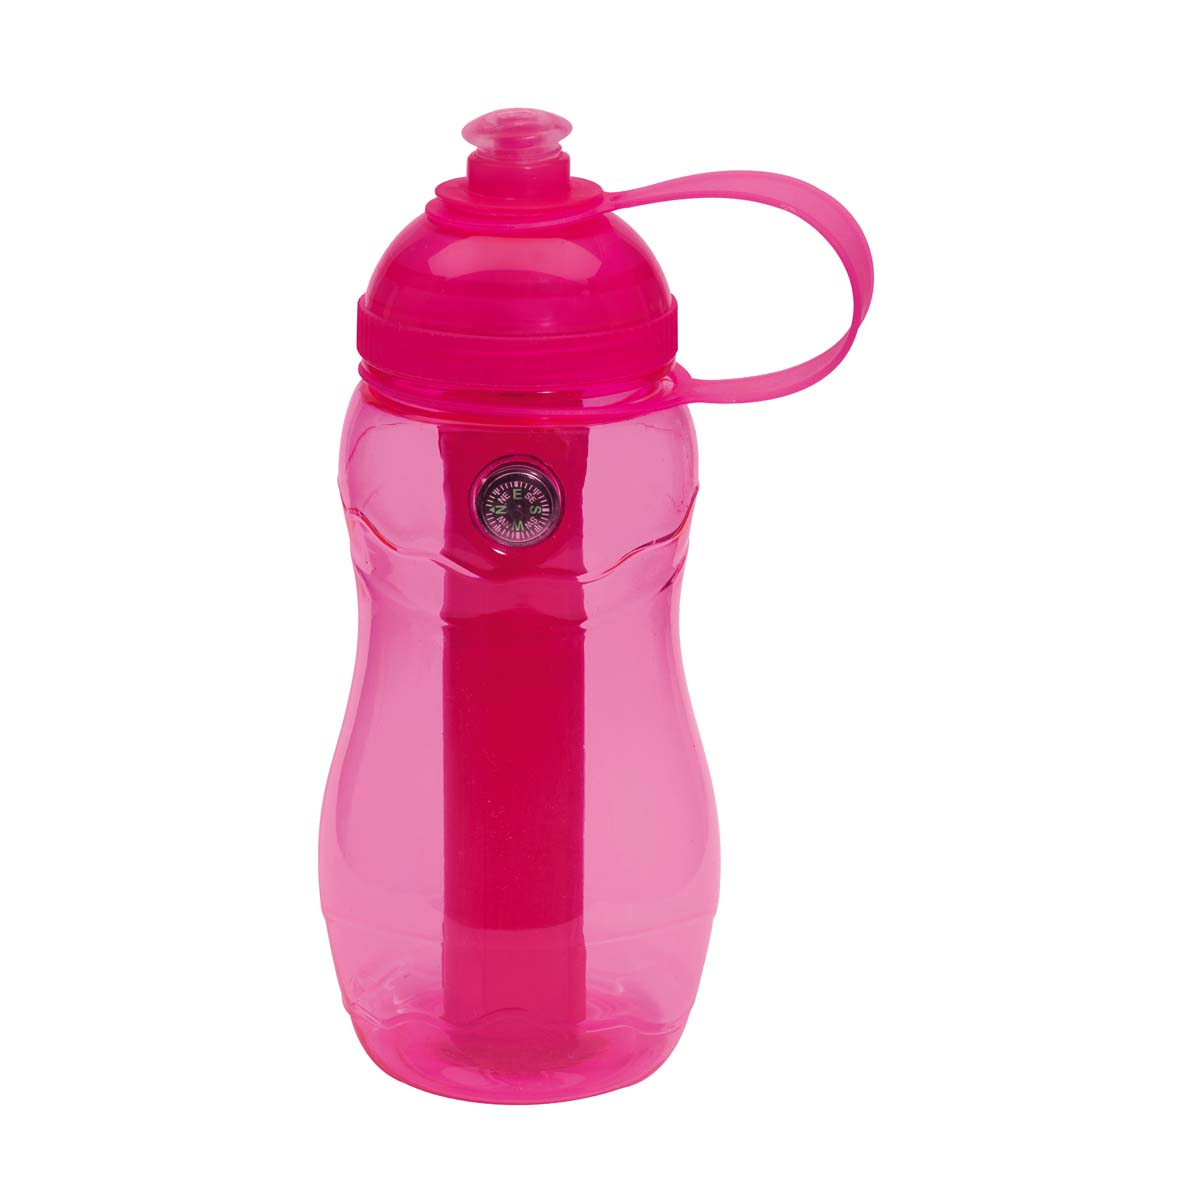 Drinking bottle 'On track' - Pink ins-0304199